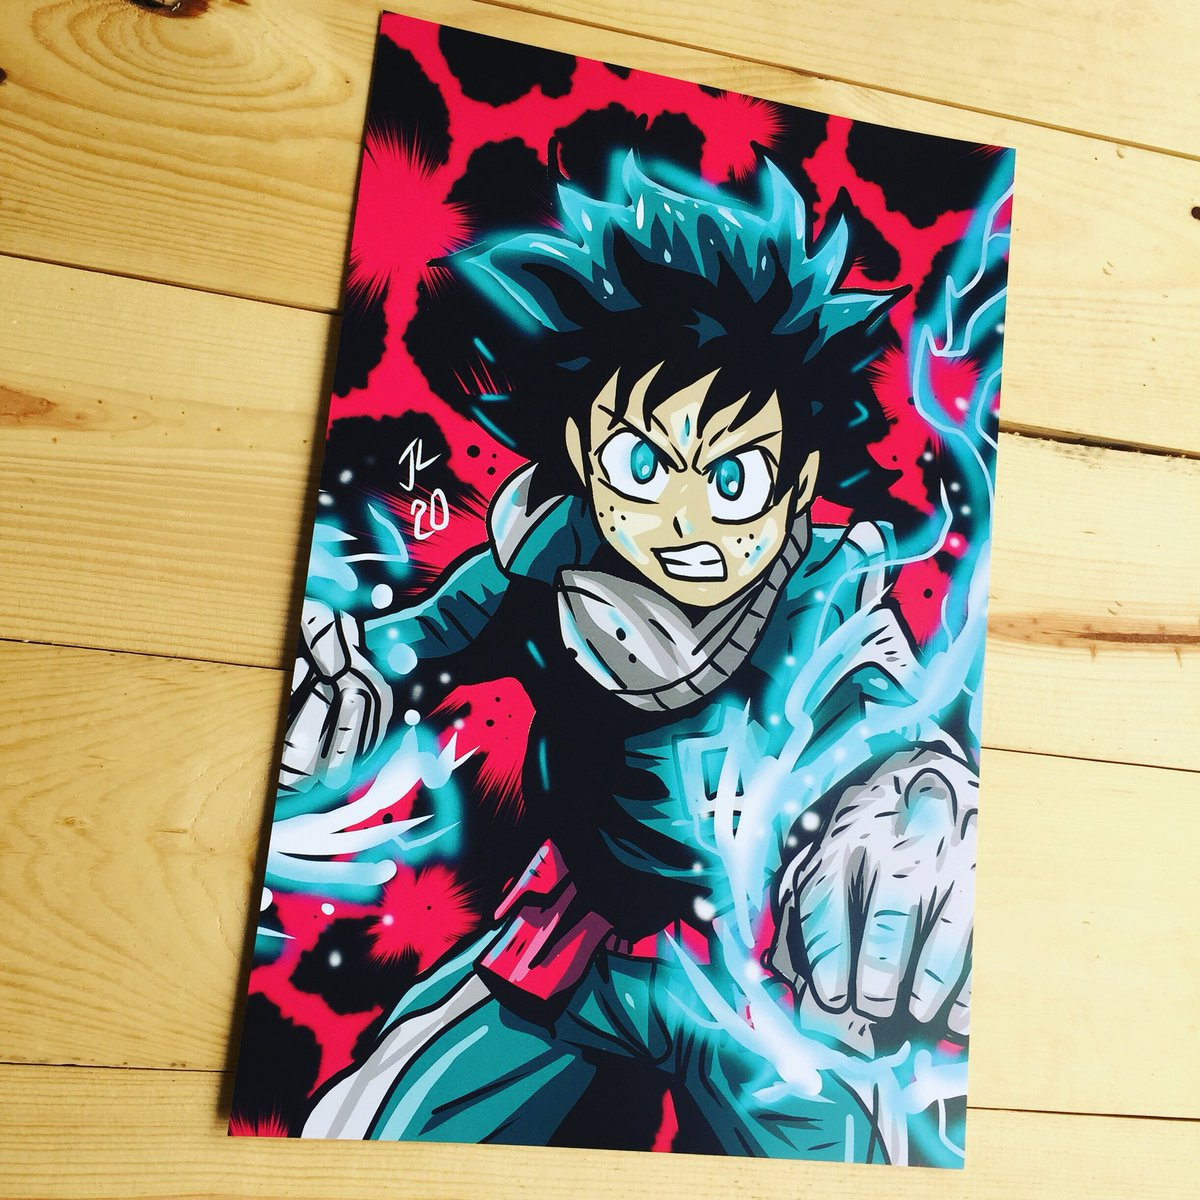 This #Deku #anime #fanart print is #ArtOfTheDay! Order your custom #posters today. https://www.printkeg.com/collections/poster-printing…